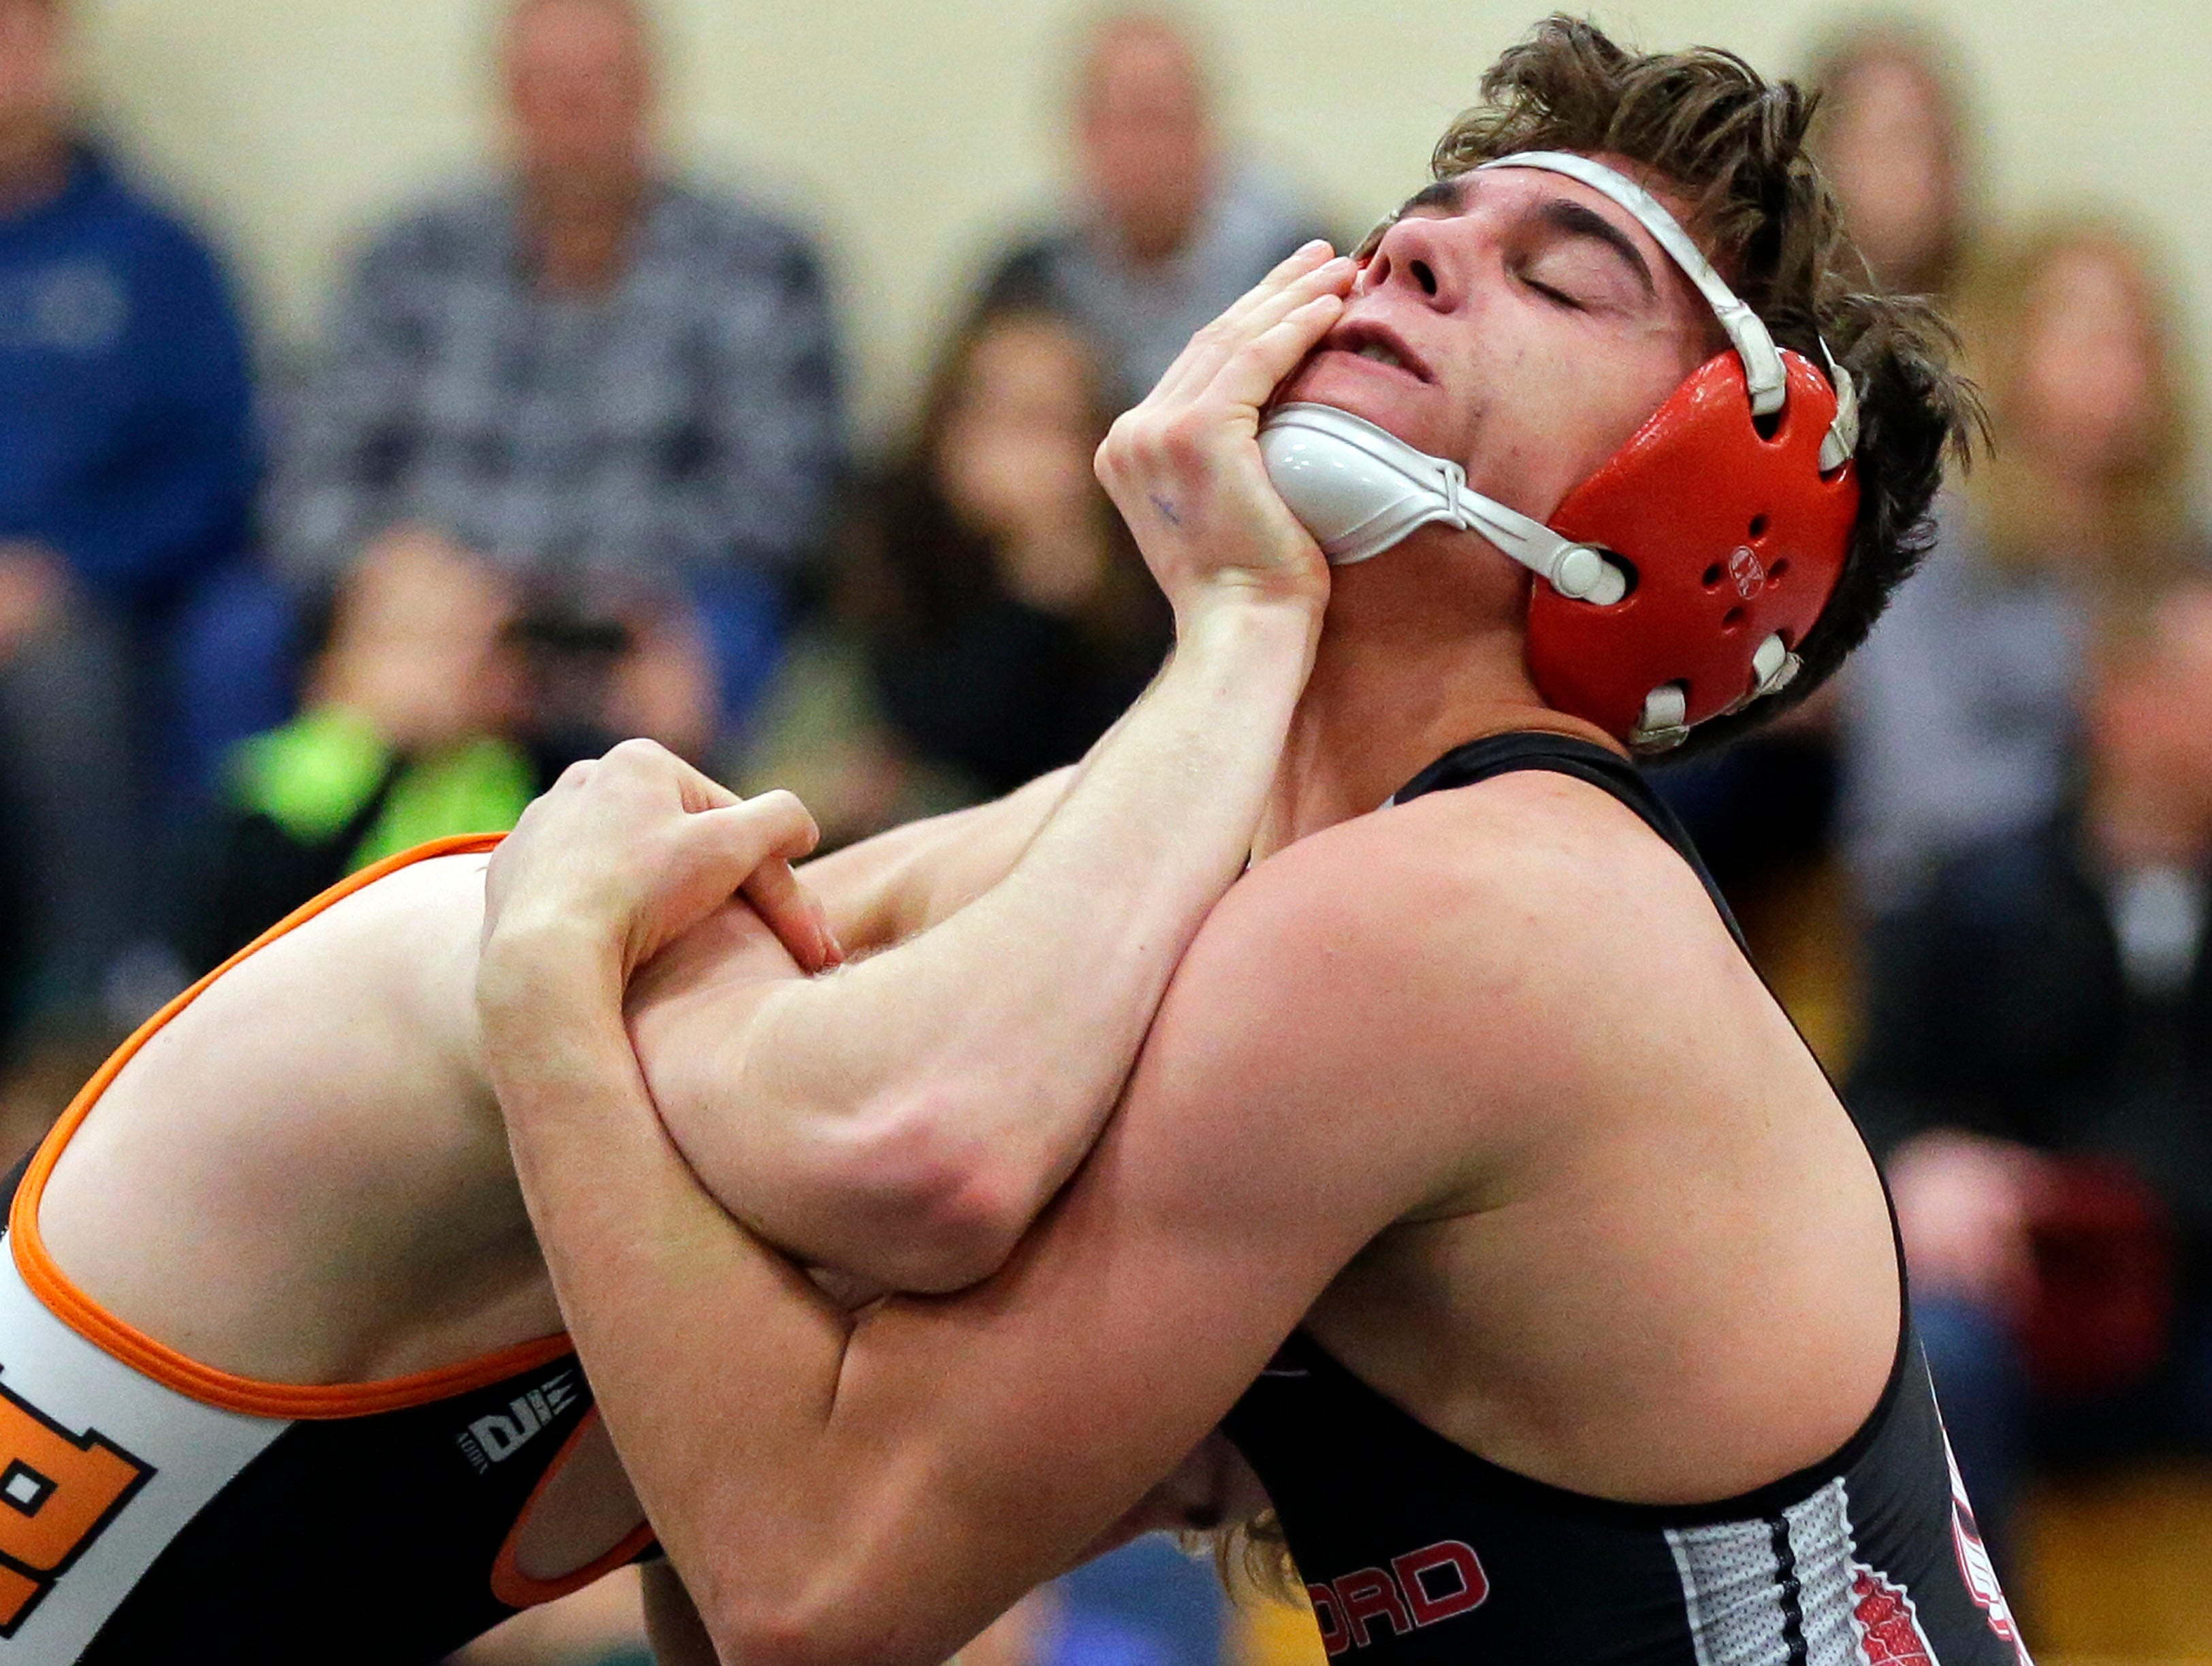 Dane Higgins of Medford wrestles Zach Weiler of Burlington during the 2019 Freedom Irish Invitational Saturday, January 12, 2019, at Freedom High School in Freedom, Wis.